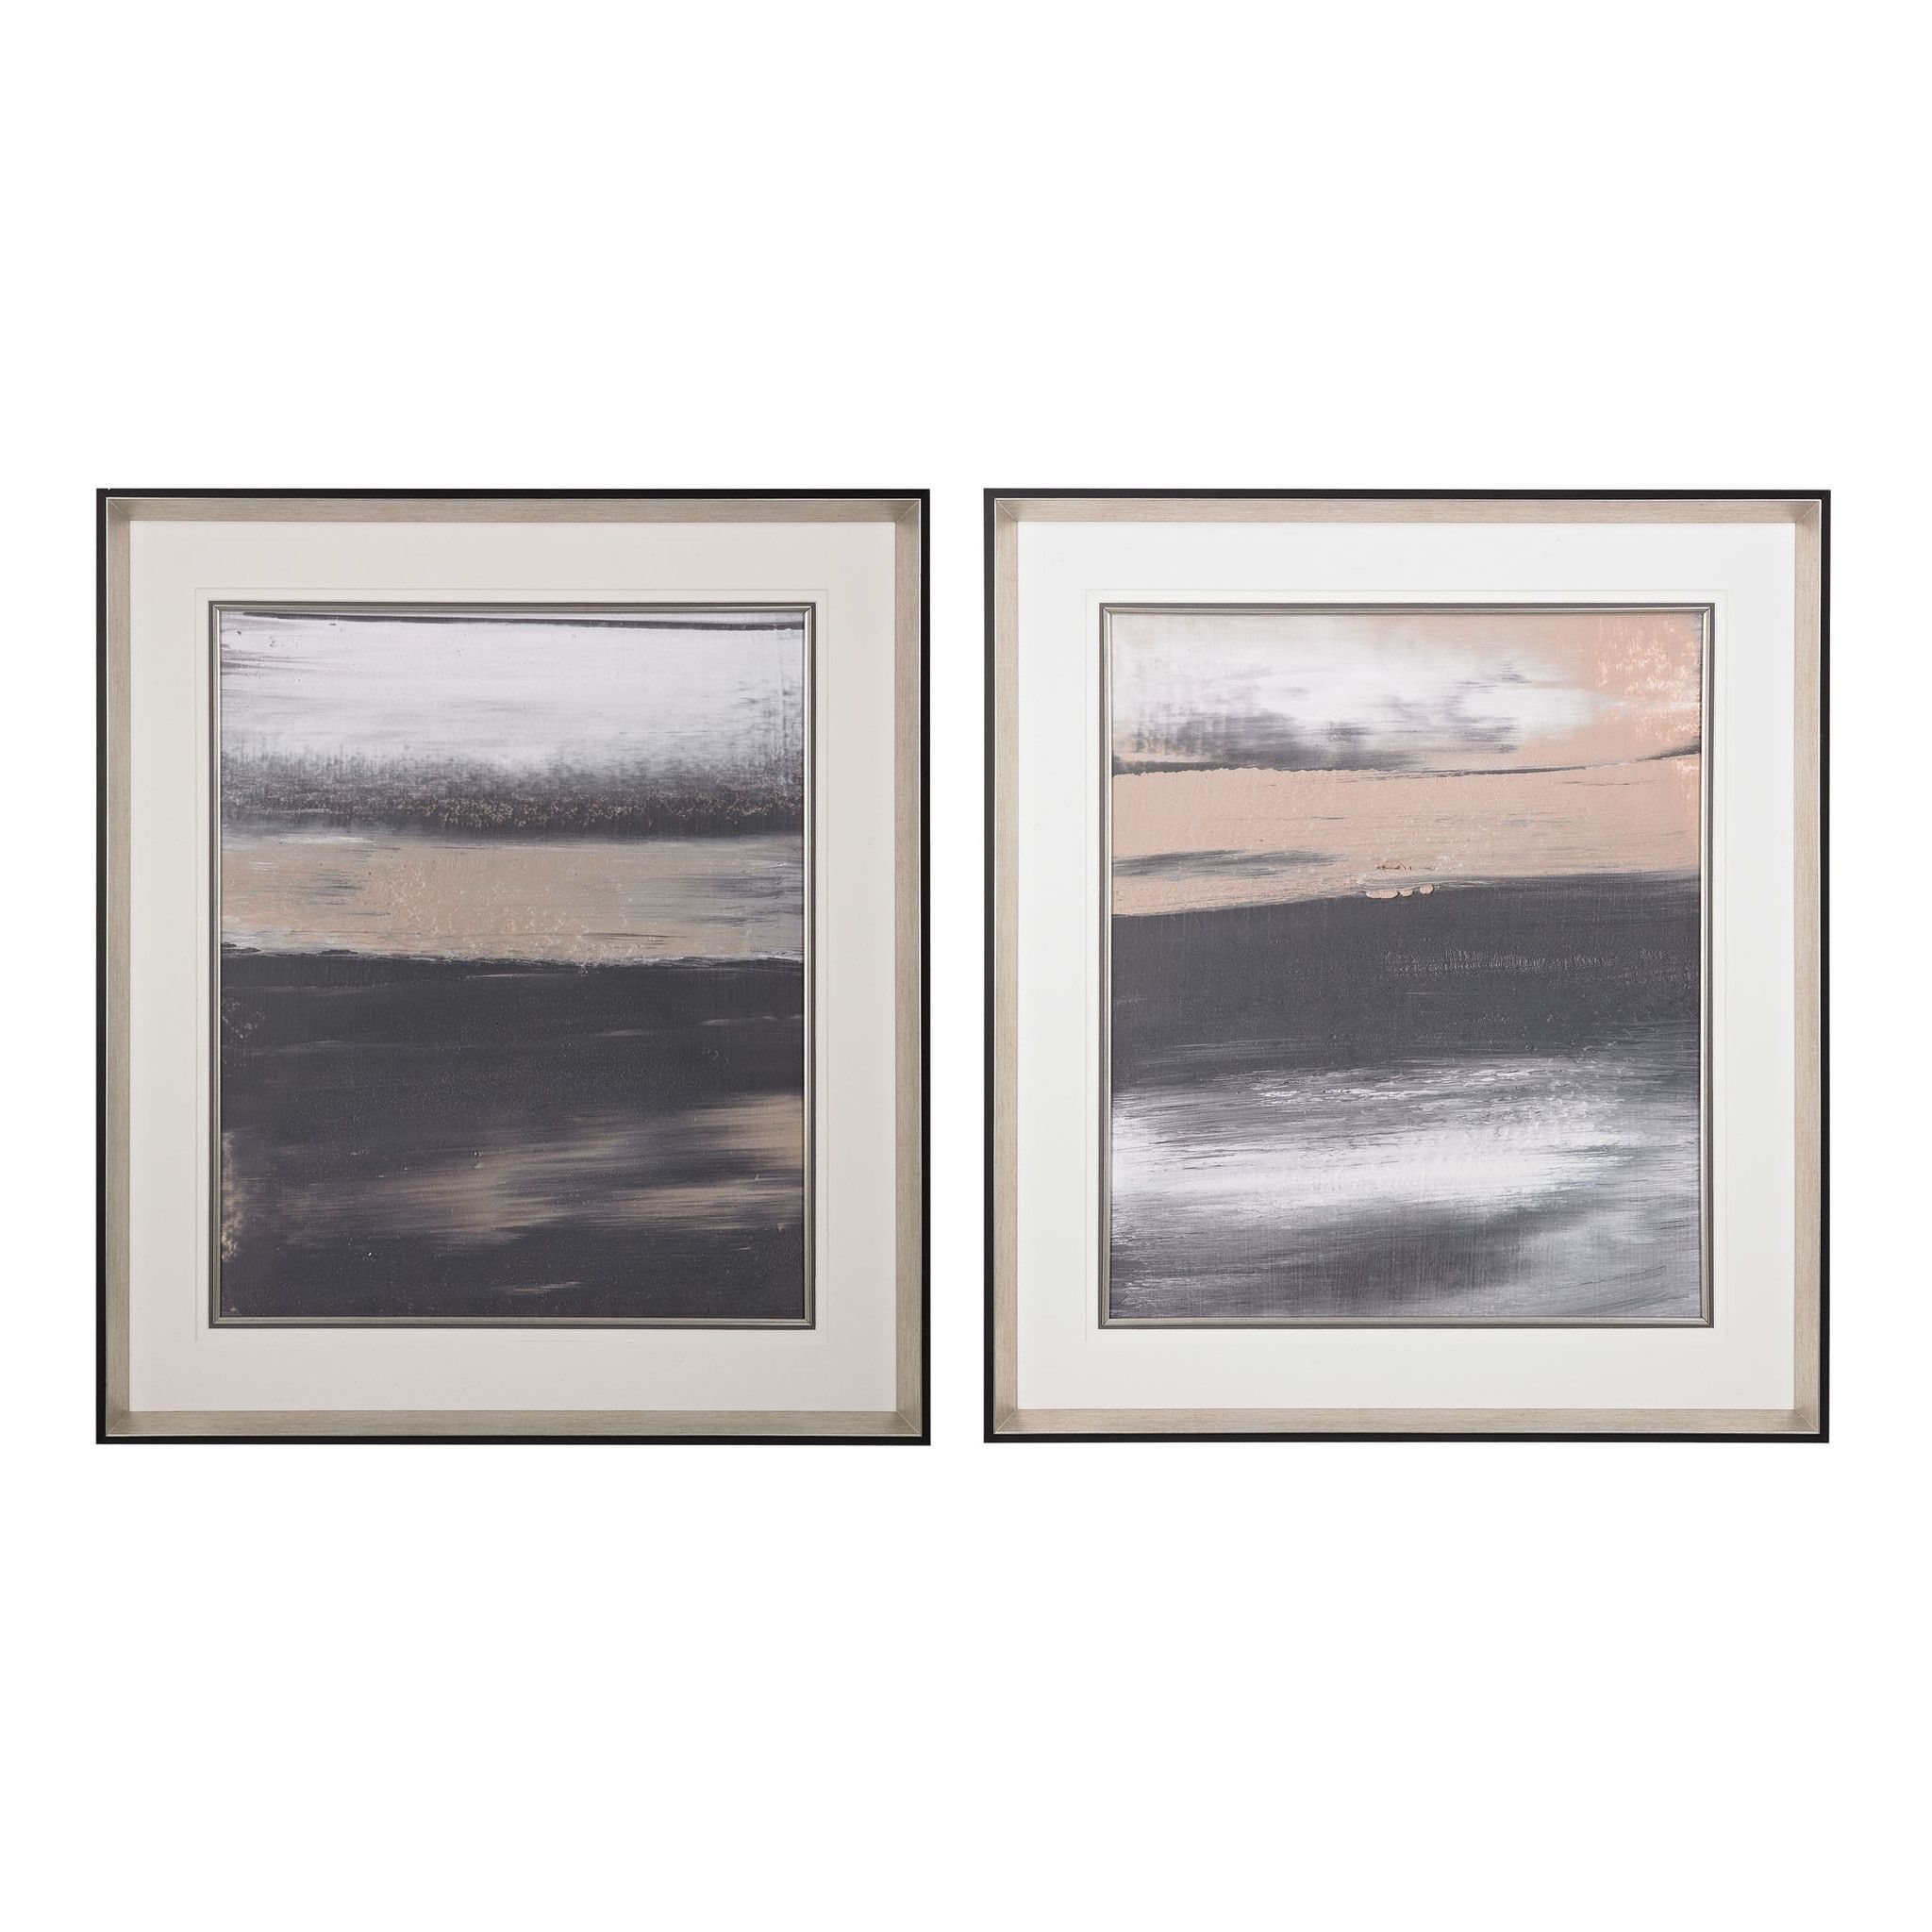 Sterling Industries Glide I, II- Limited Edition Print On Fine Art Paper Under Glass 151-017/S2